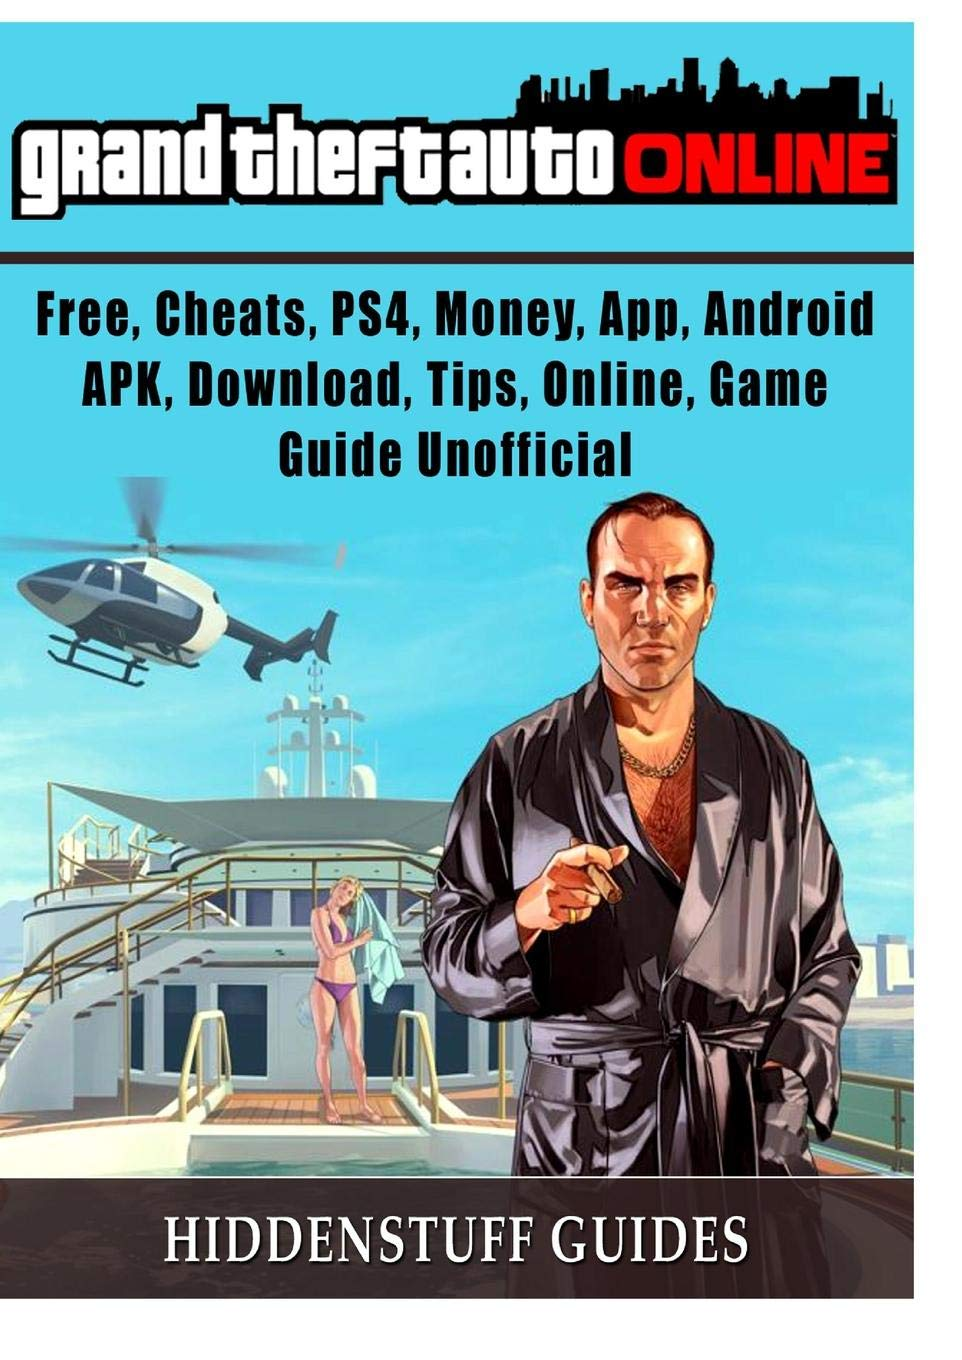 Grand Theft Auto Online, Free, Cheats, PS4, Money, App, Android, APK